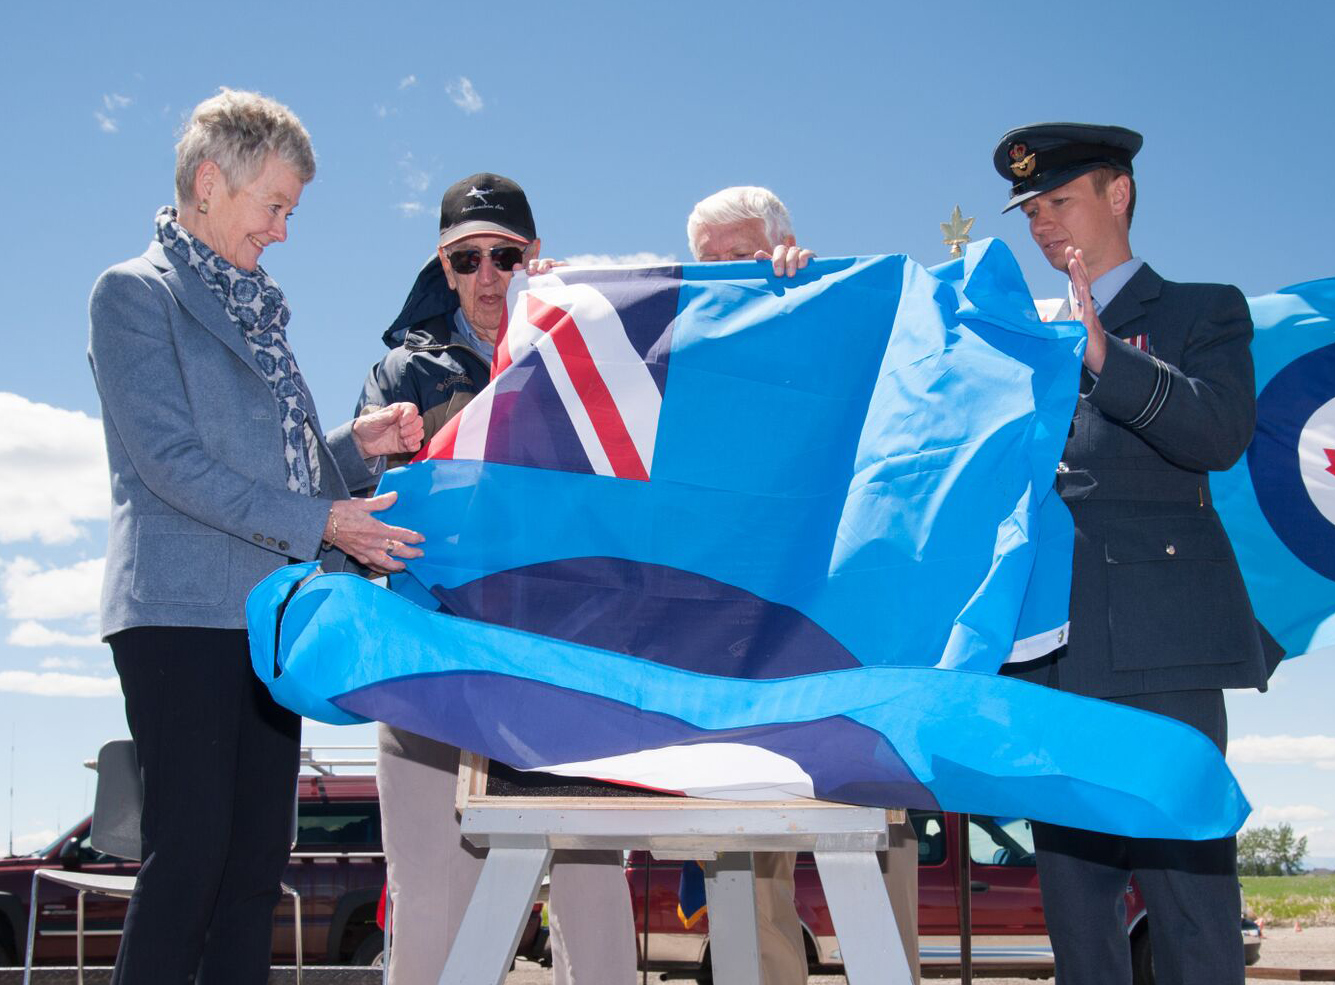 (Left to right) Susan Cowan, the daughter Squadron Leader Ron Watts, a commanding officer of No. 31 Elementary Flying Training School De Winton; Squadron Leader Rae Churchill, a Second World War flying instructor; Mr. Tim Johnston, master of ceremonies; and Flight Lieutenant James Andrews of the Royal Air Force, unveil the memorial plaque during the school's 75th anniversary reunion on June 15, 2016. PHOTO: Courtesy of Anne Gafiuk